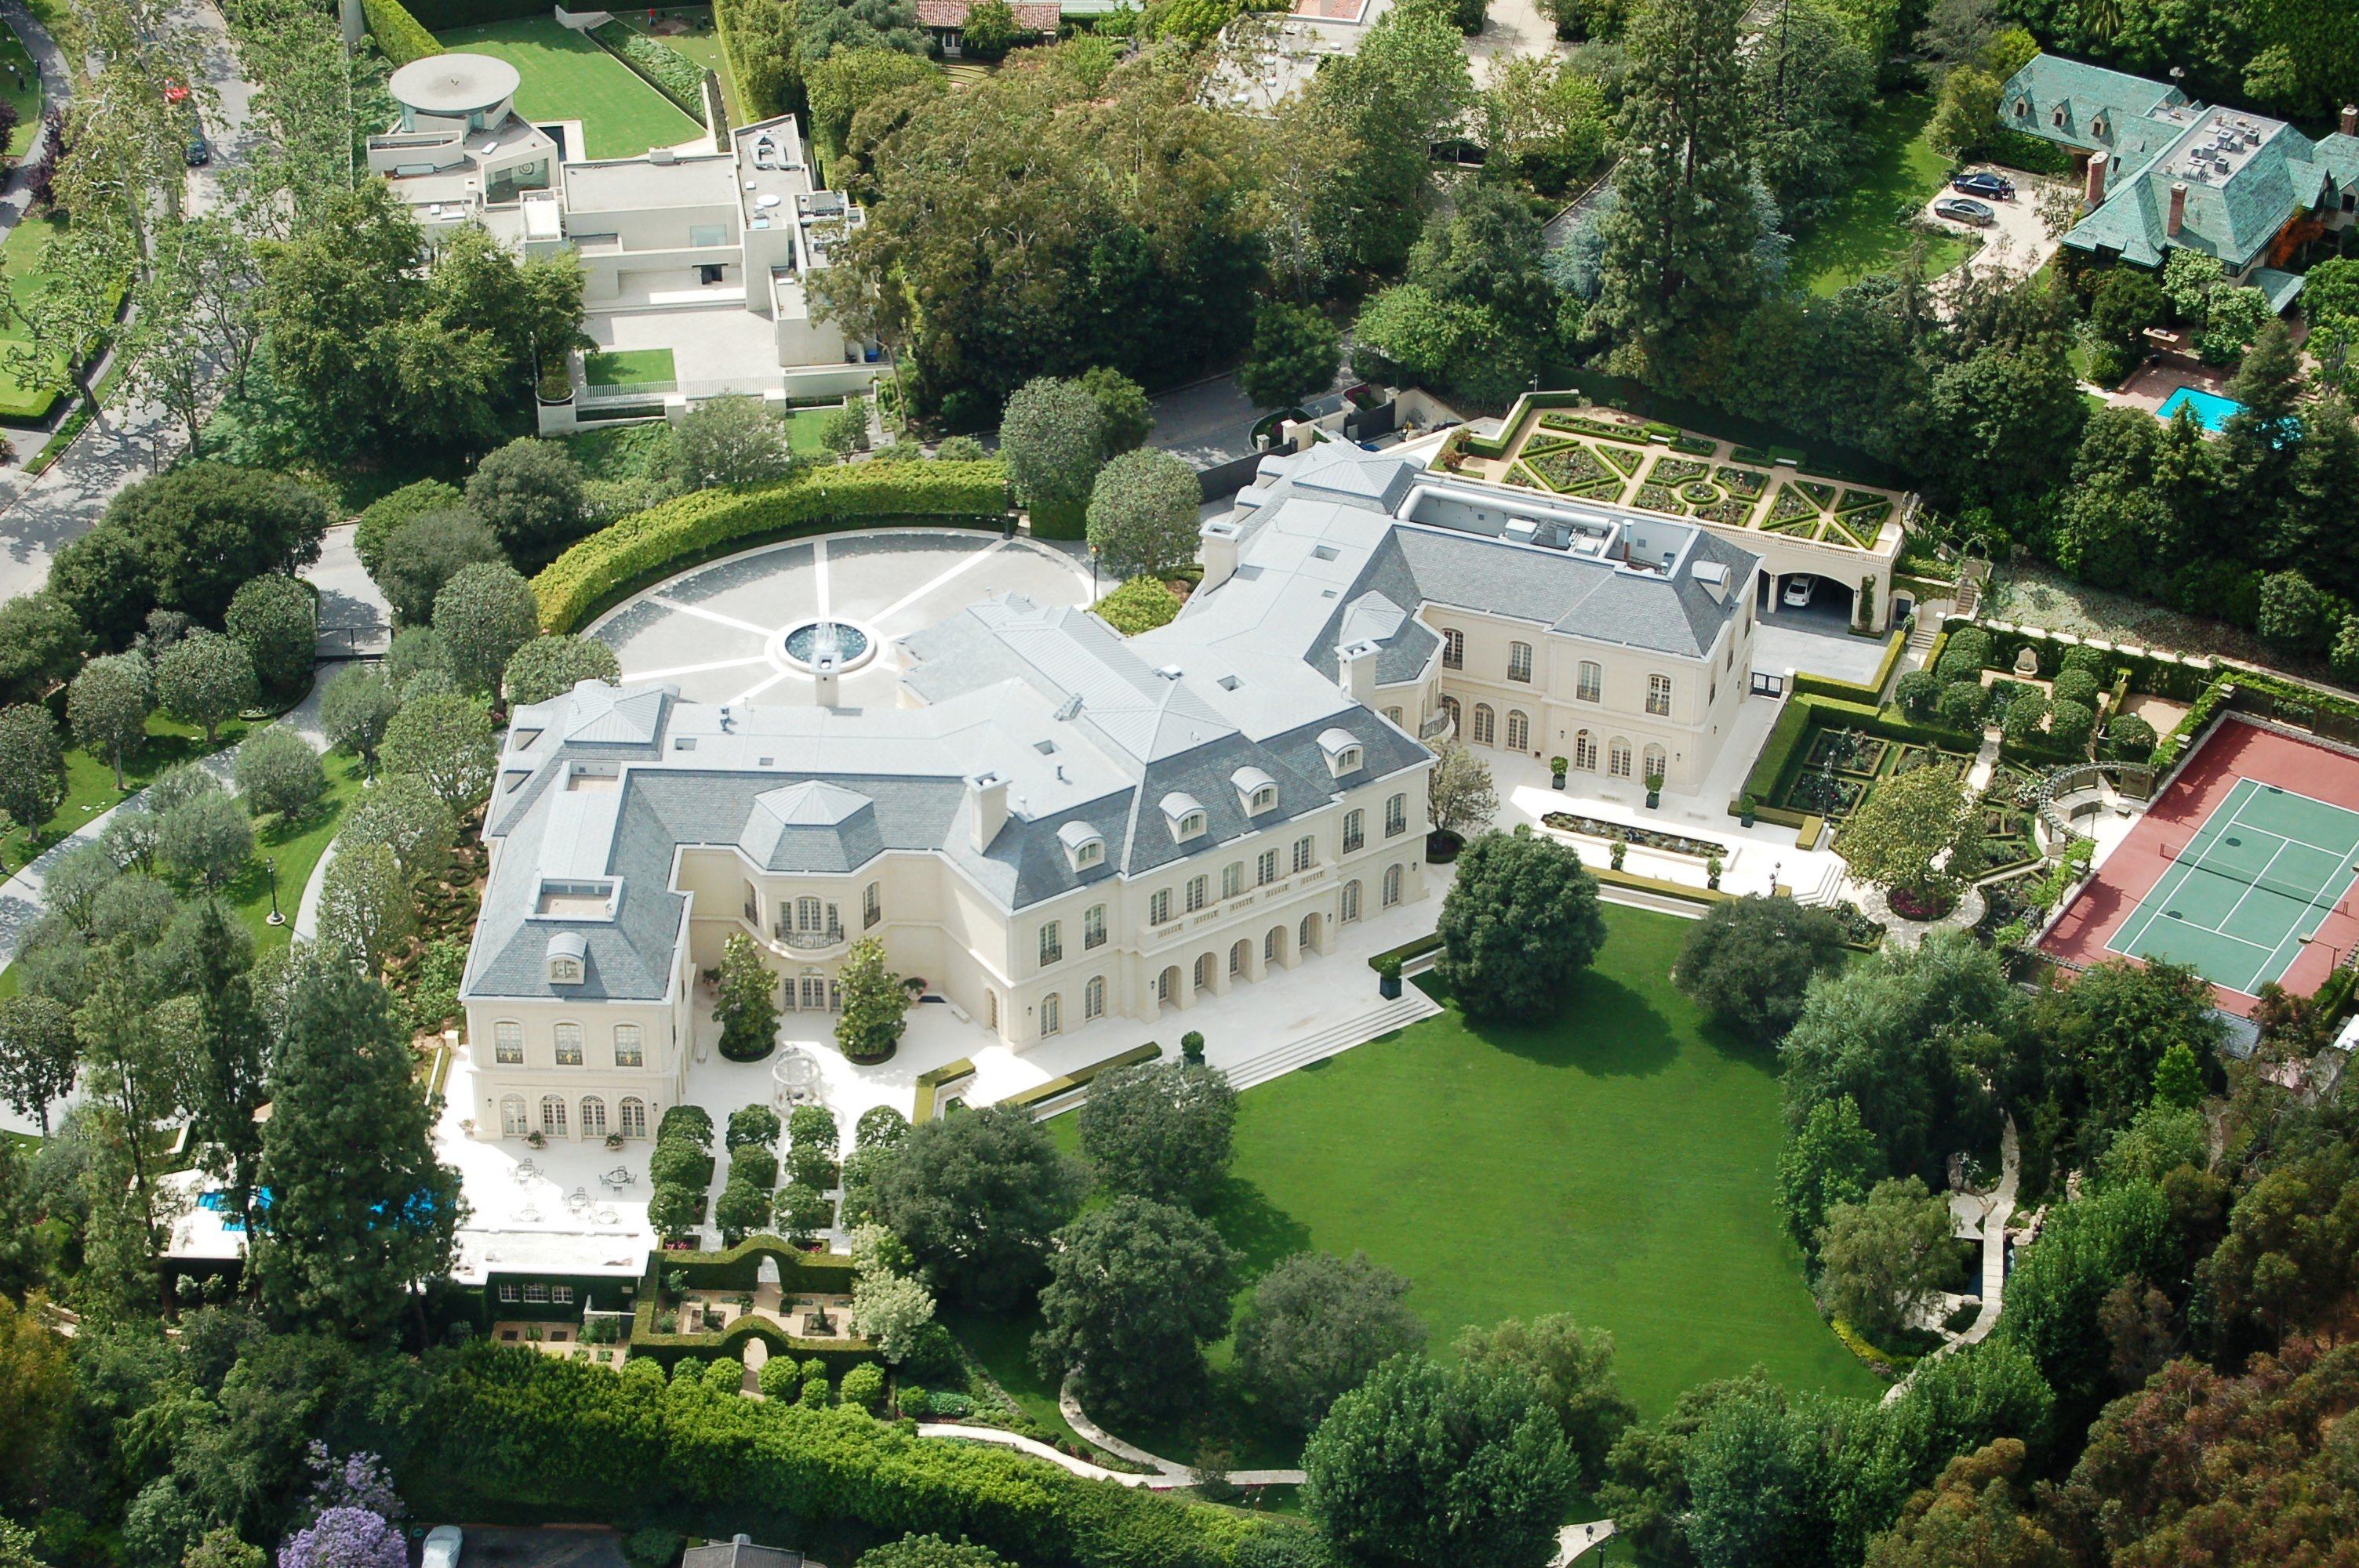 Lavish luxurious 10 of the biggest houses in the world for Top 10 biggest houses in the world